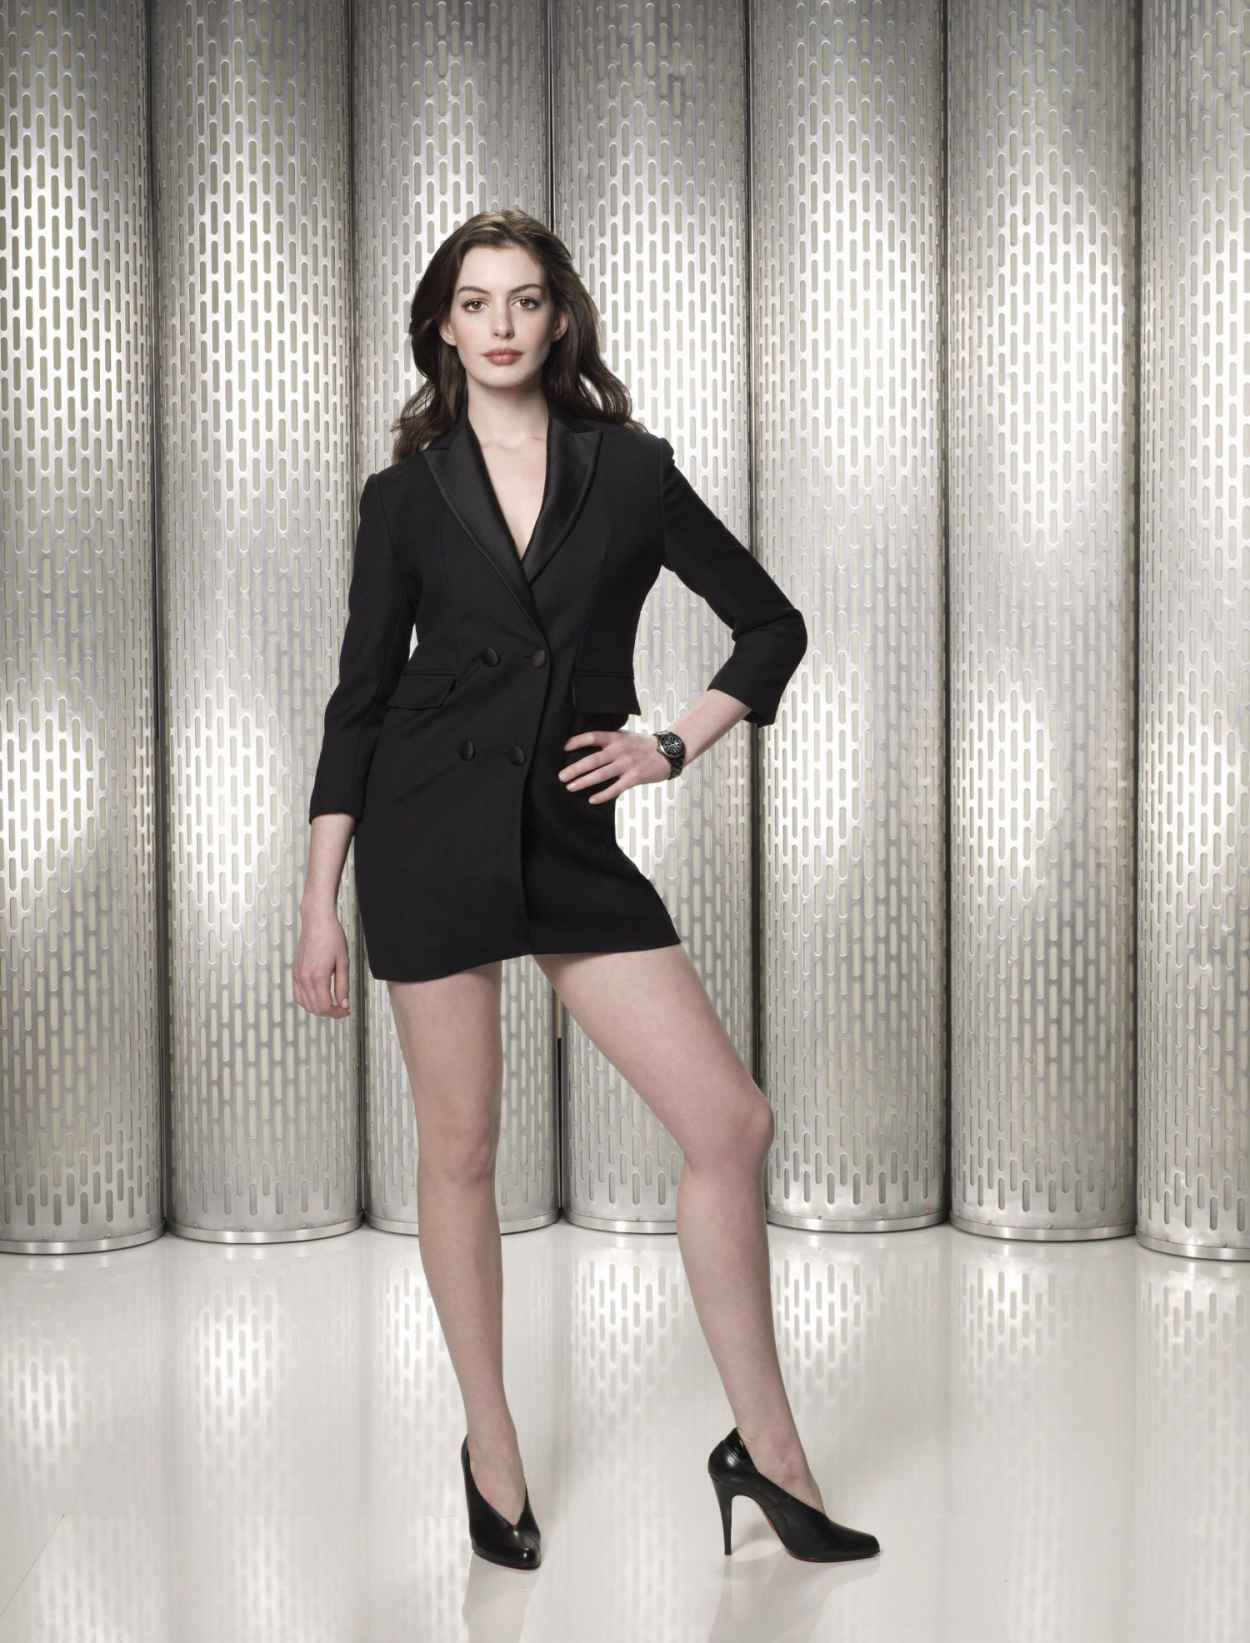 Anne Hathaway Leggy in High Heels - Get Smart Photoshoot-1